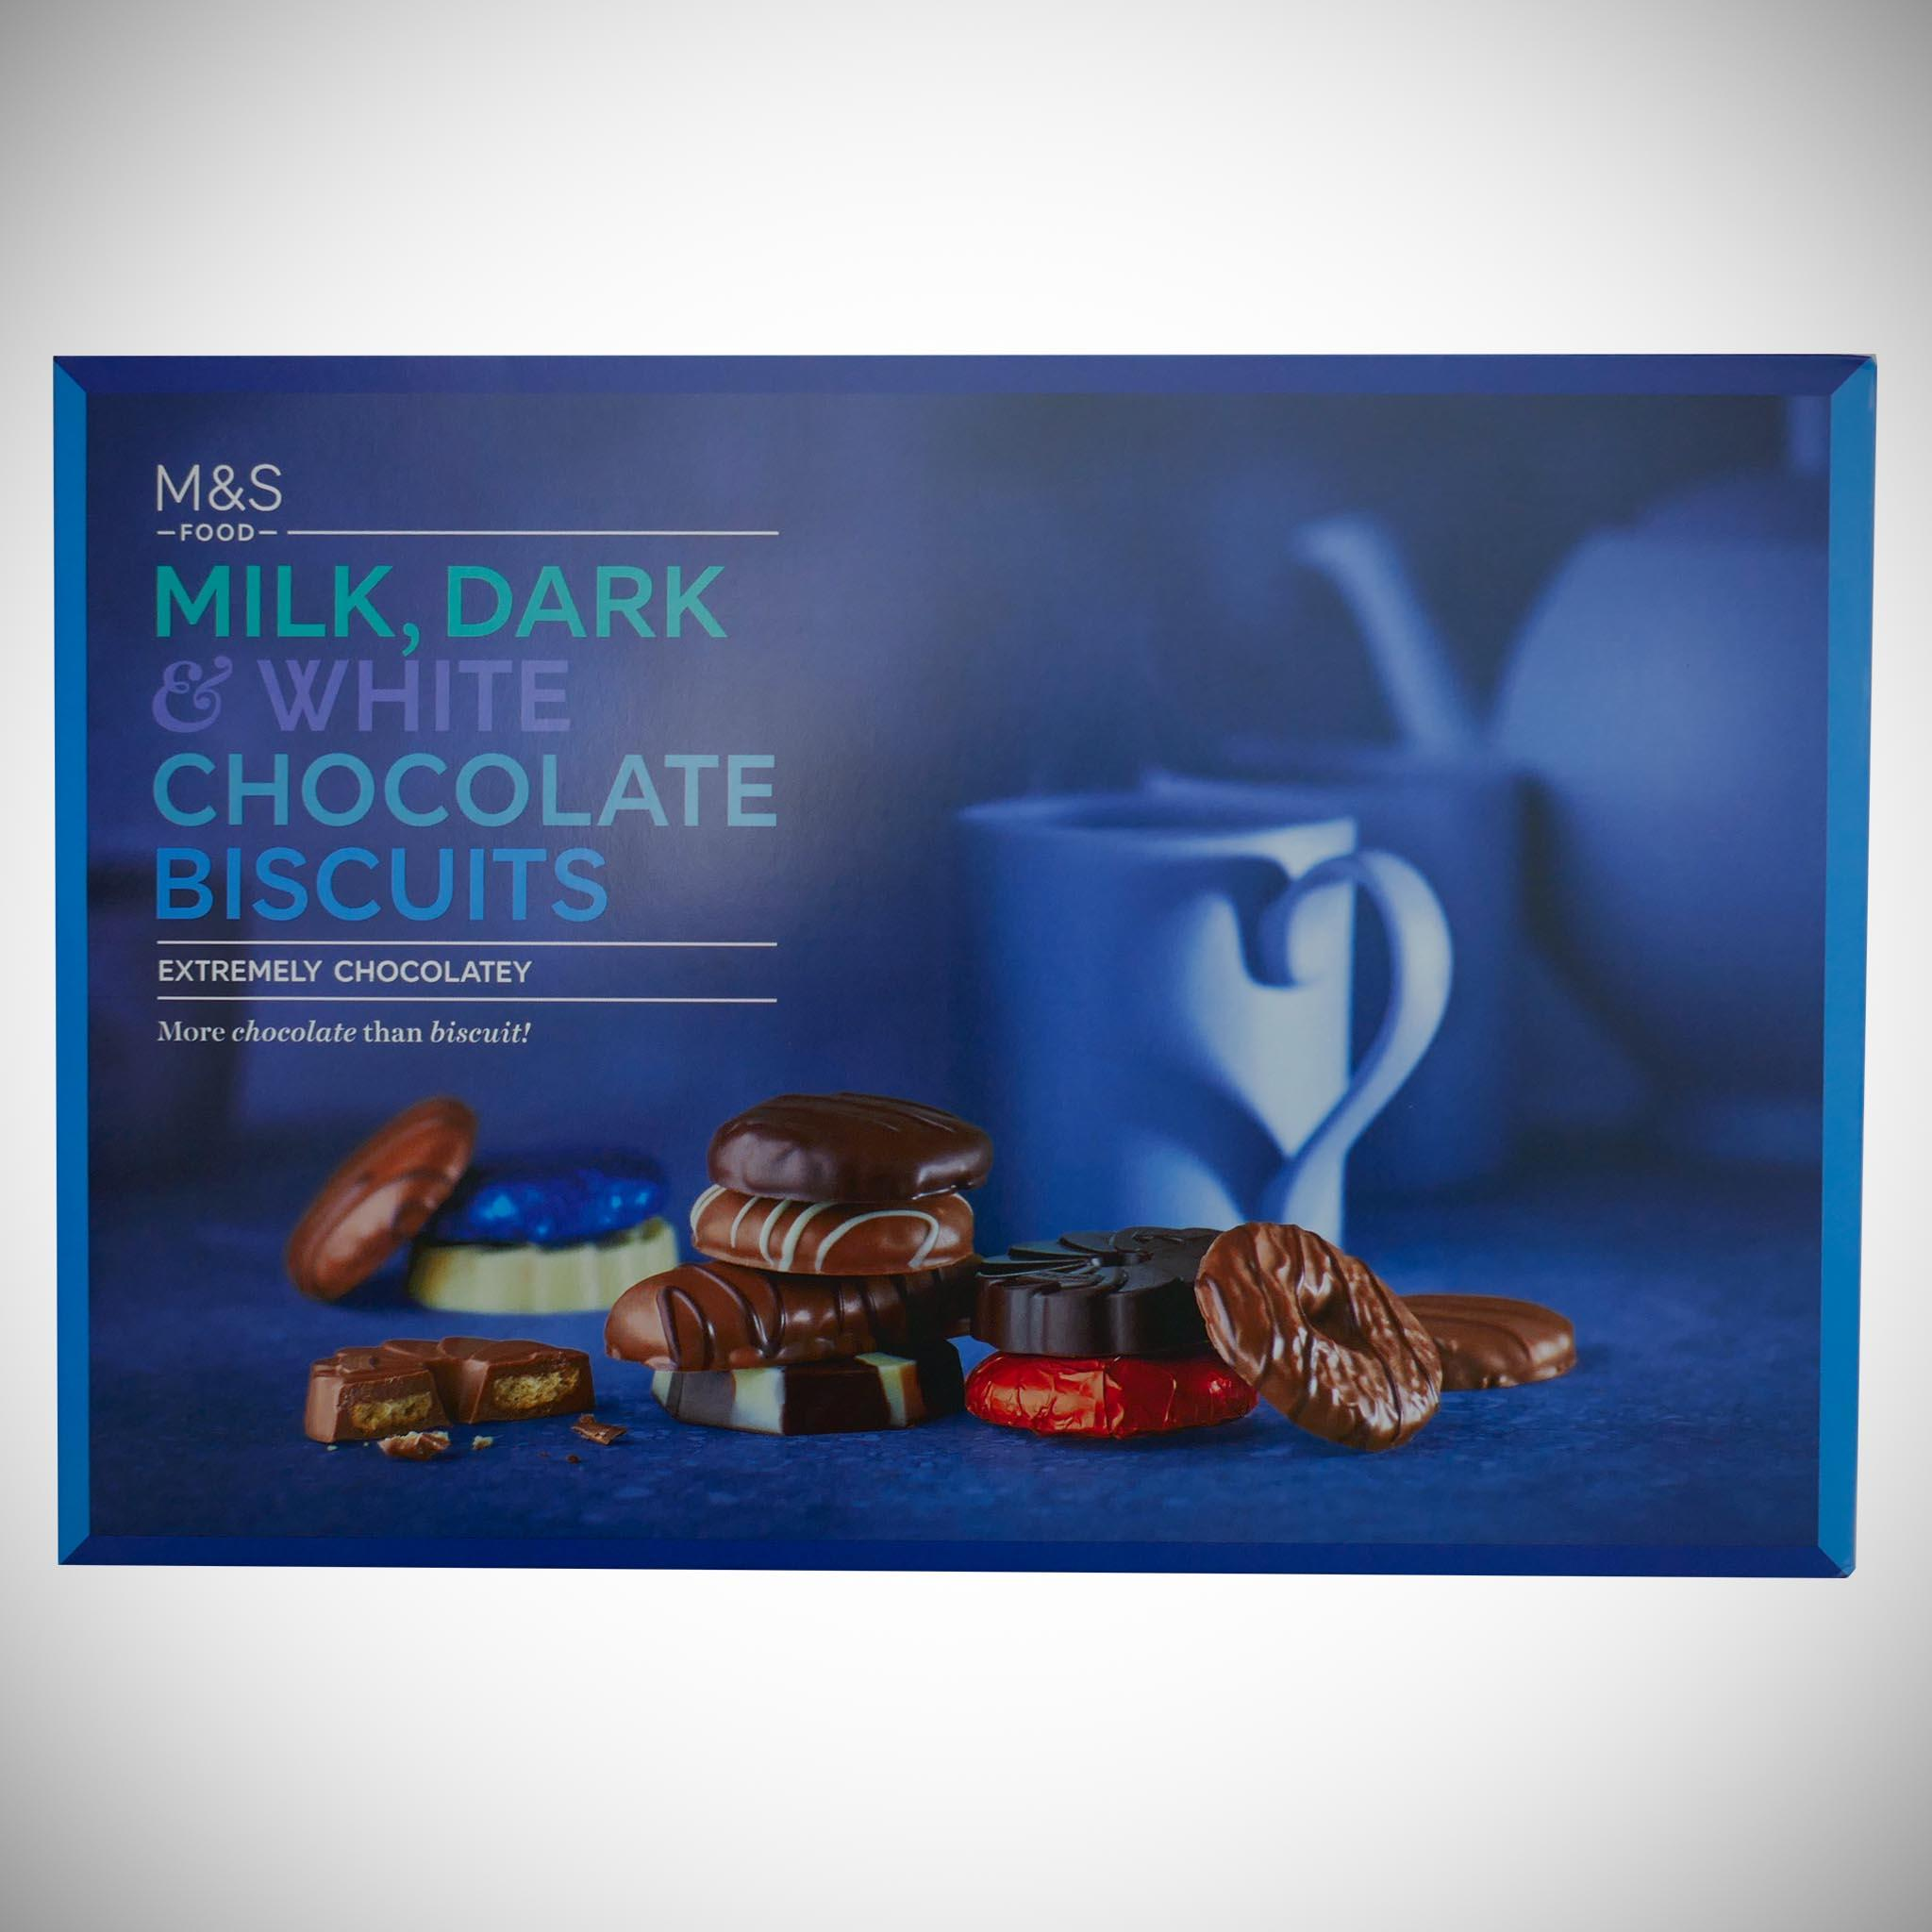 Milk, Dark & White Chocolate Biscuits 500g